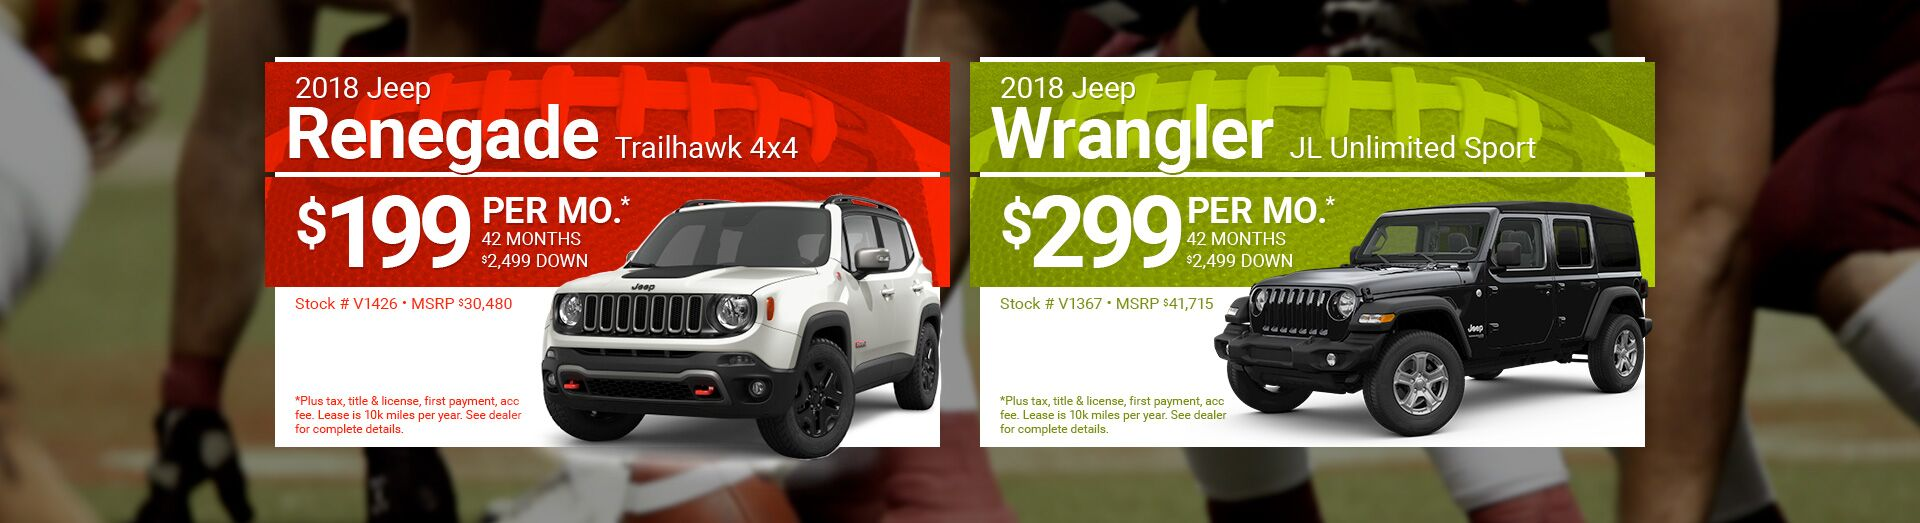 2018 Jeep Renegade and Wrangler